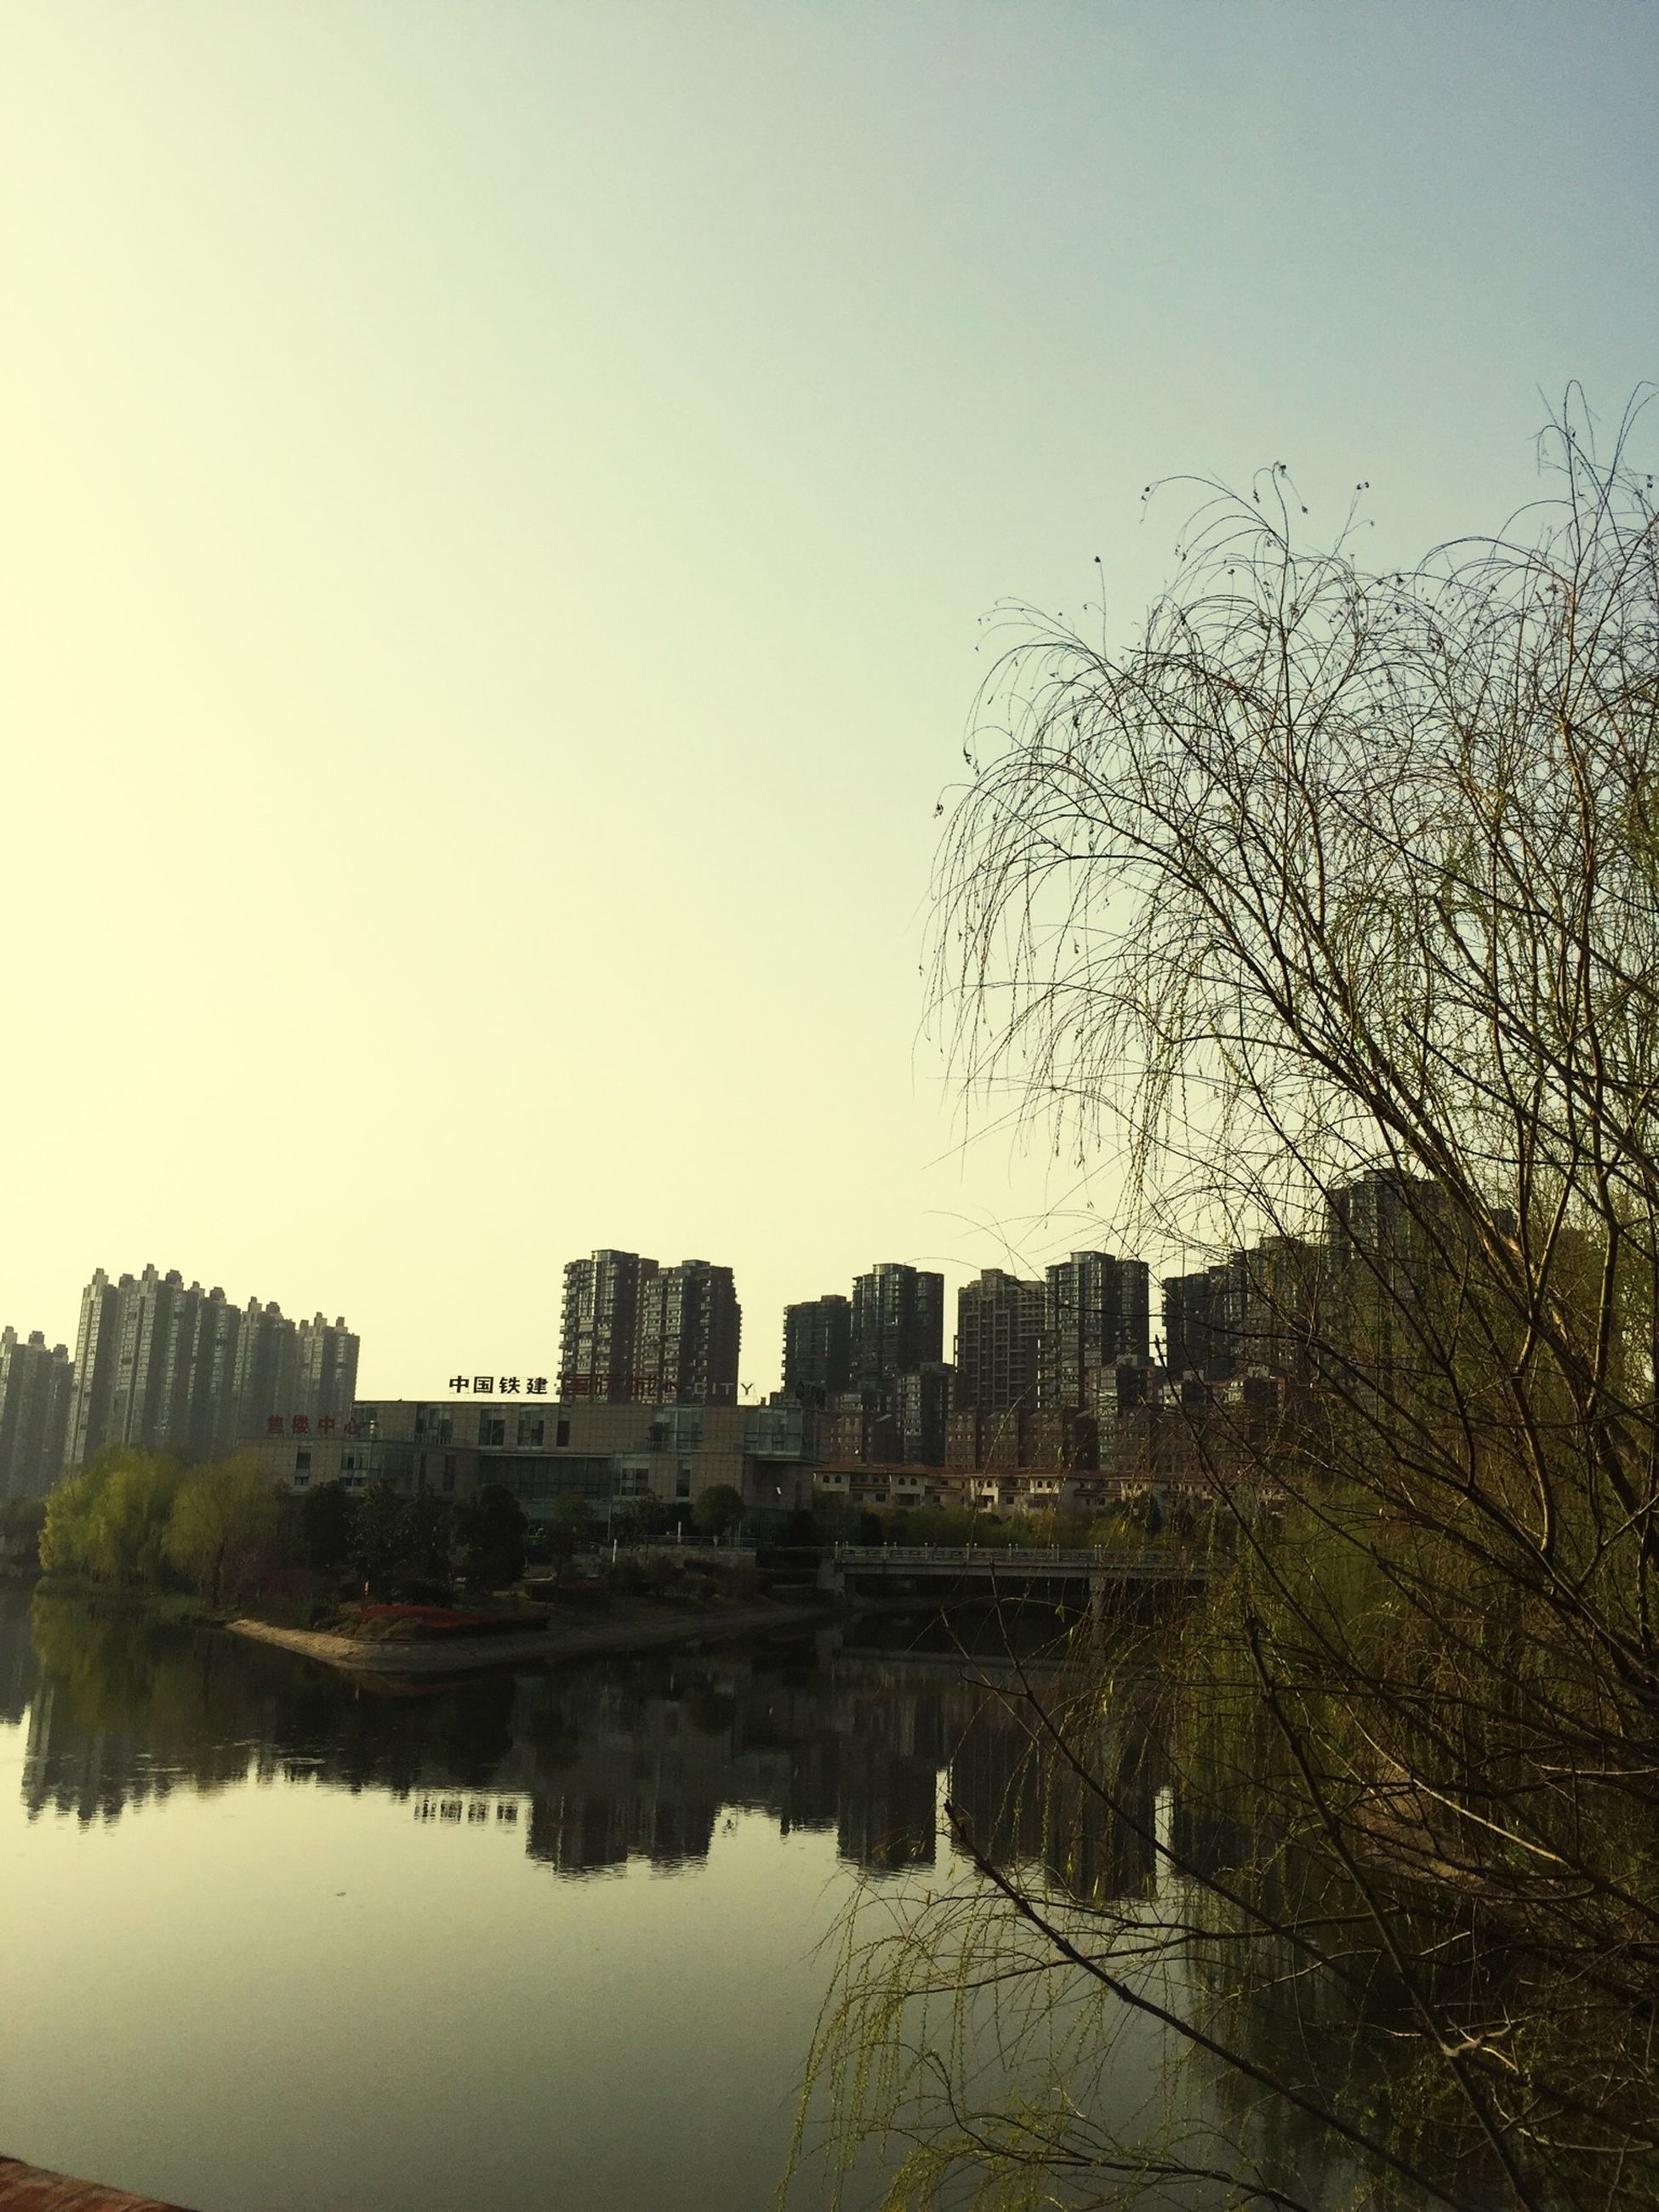 architecture, building exterior, built structure, water, reflection, clear sky, waterfront, tree, river, city, lake, copy space, building, sky, bare tree, residential building, residential structure, outdoors, day, no people